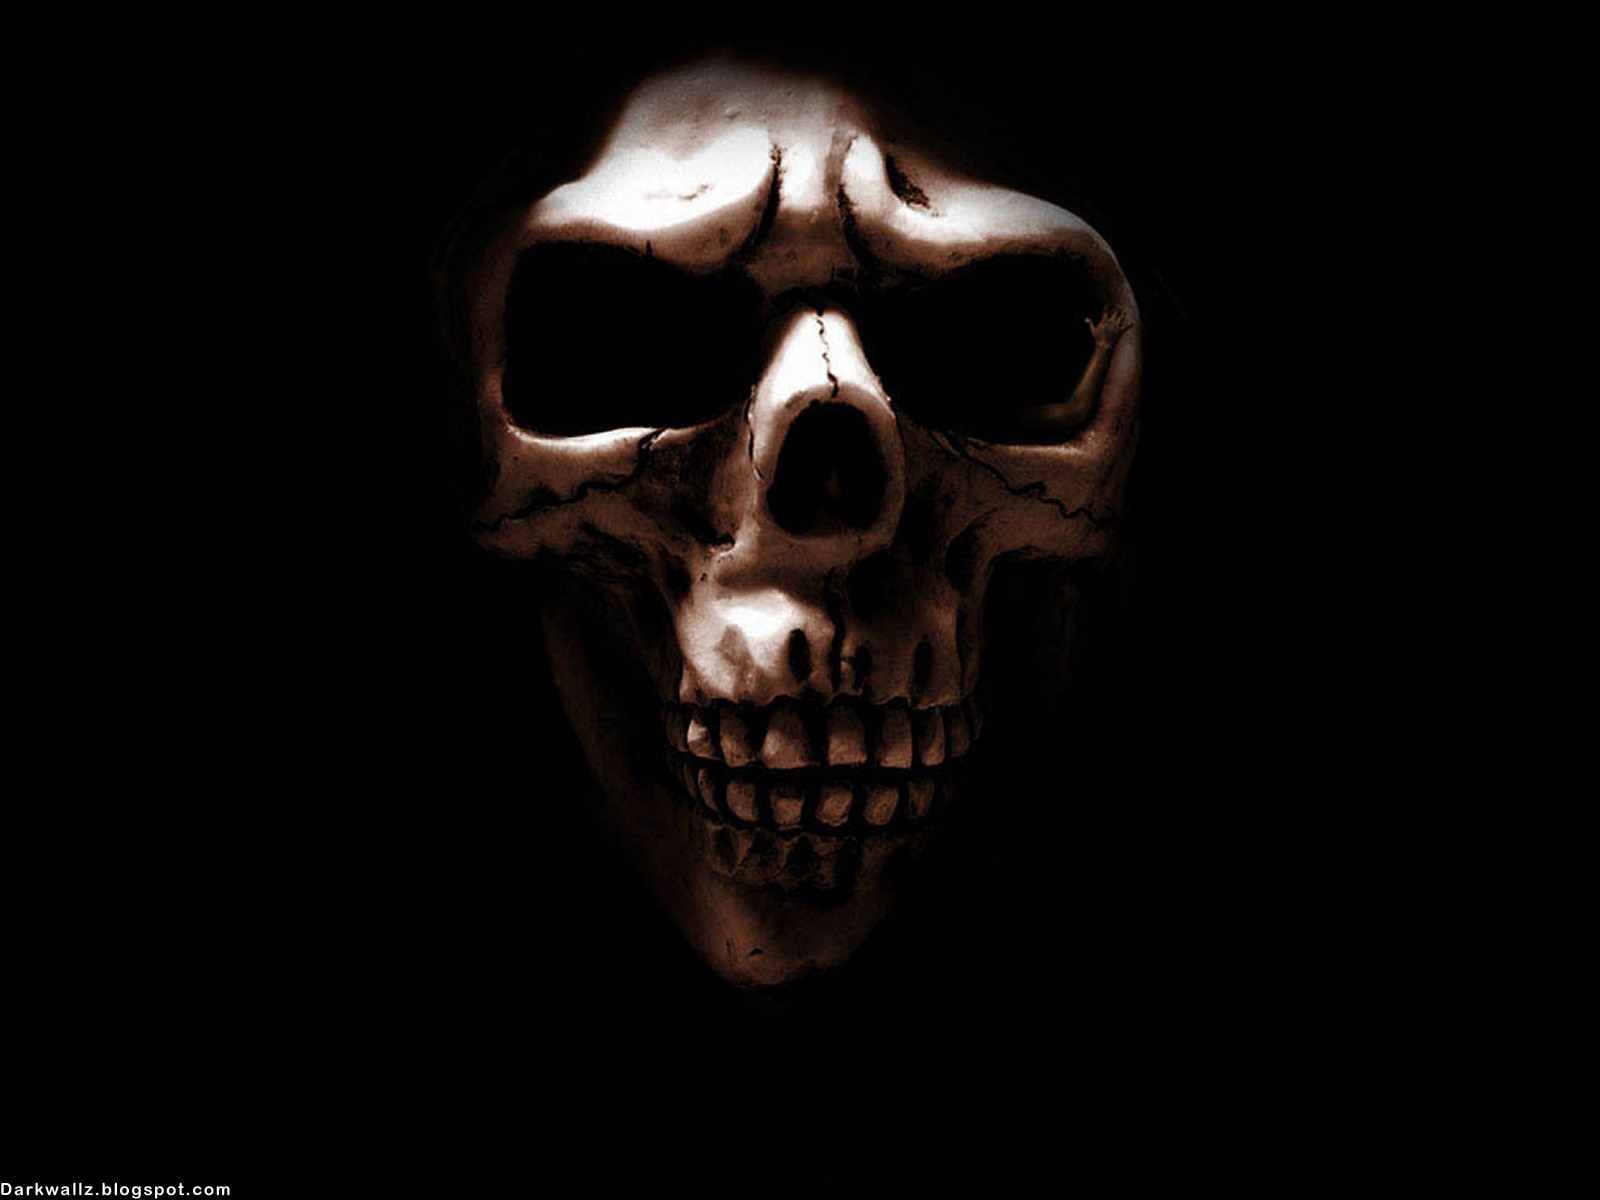 Dark Skulls Wallpapers 91 | Dark Wallpaper Download